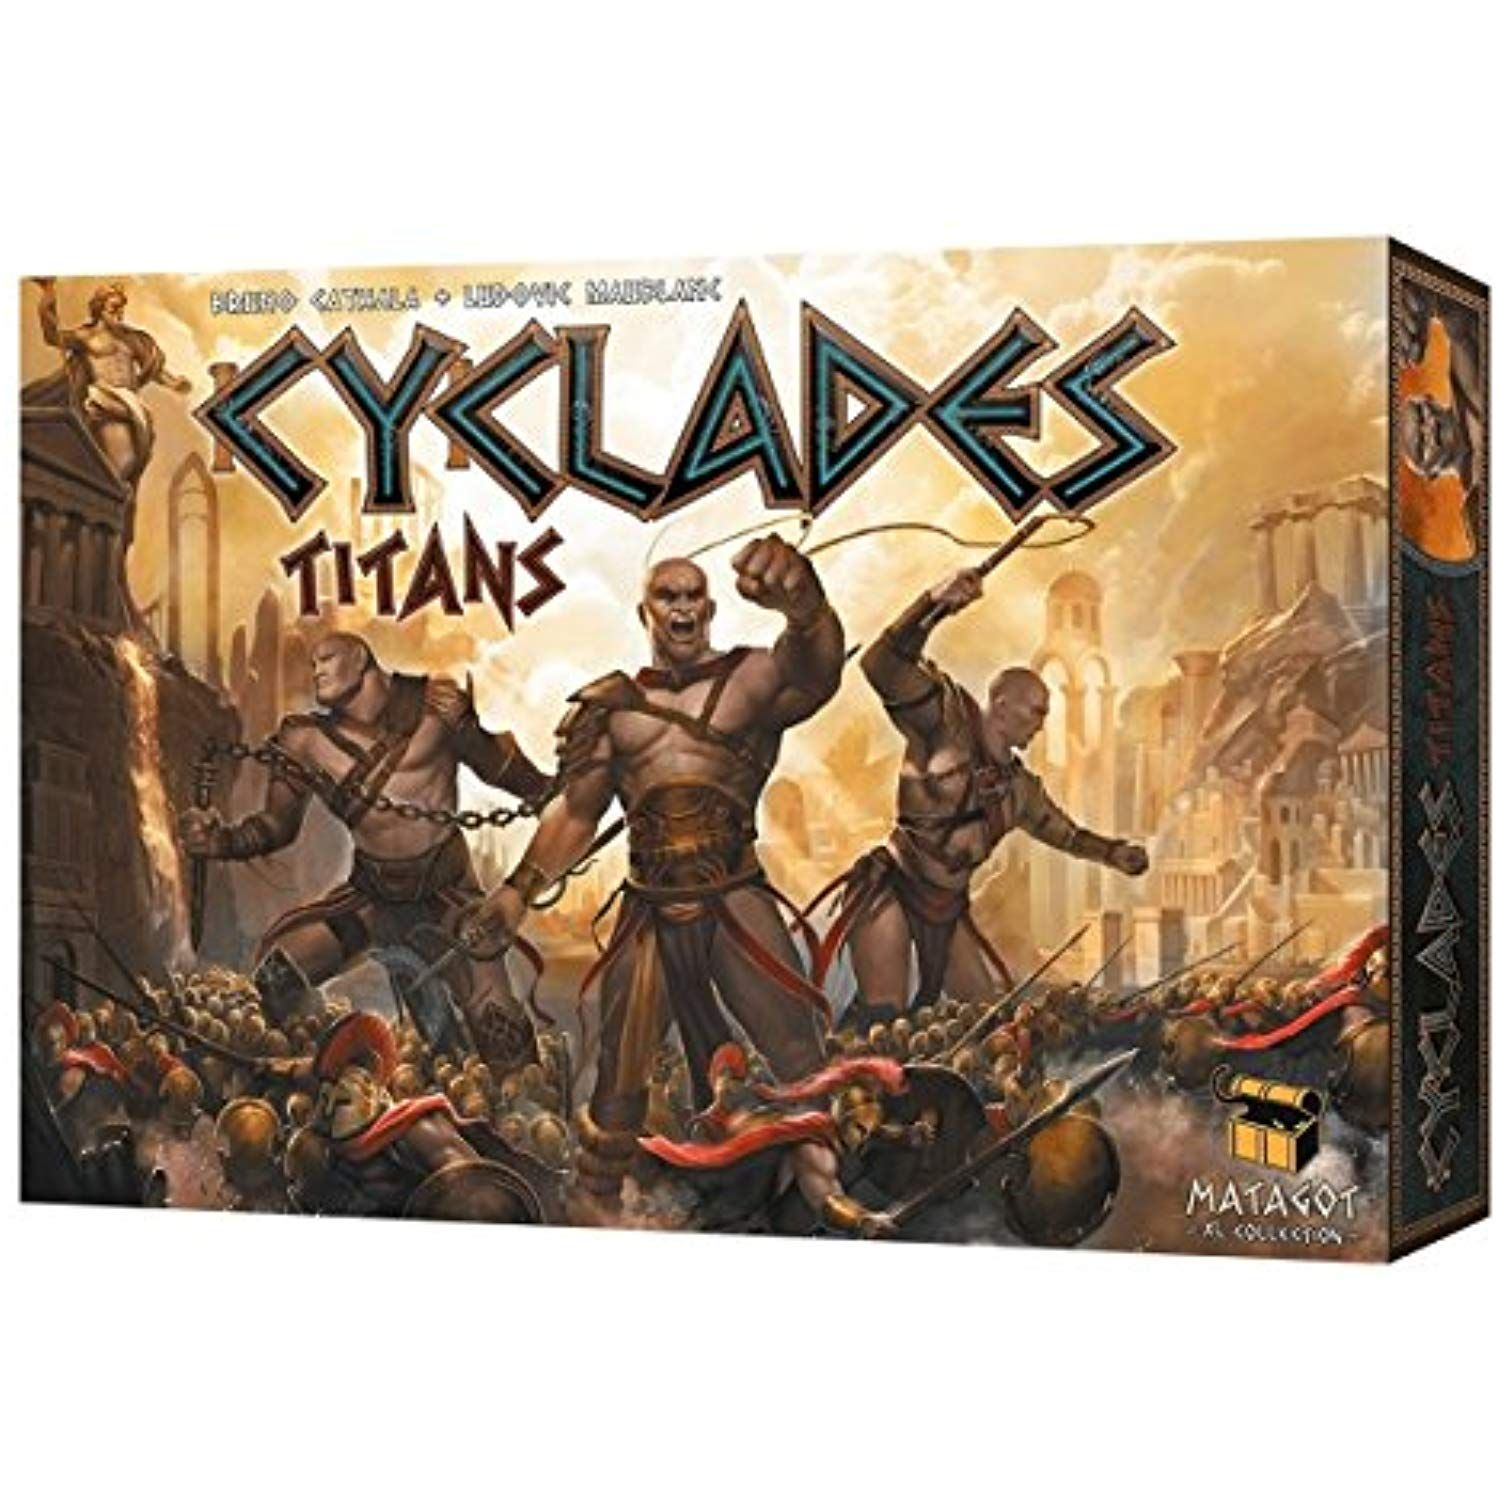 Cyclades Titans Ezpansion Click image for more details